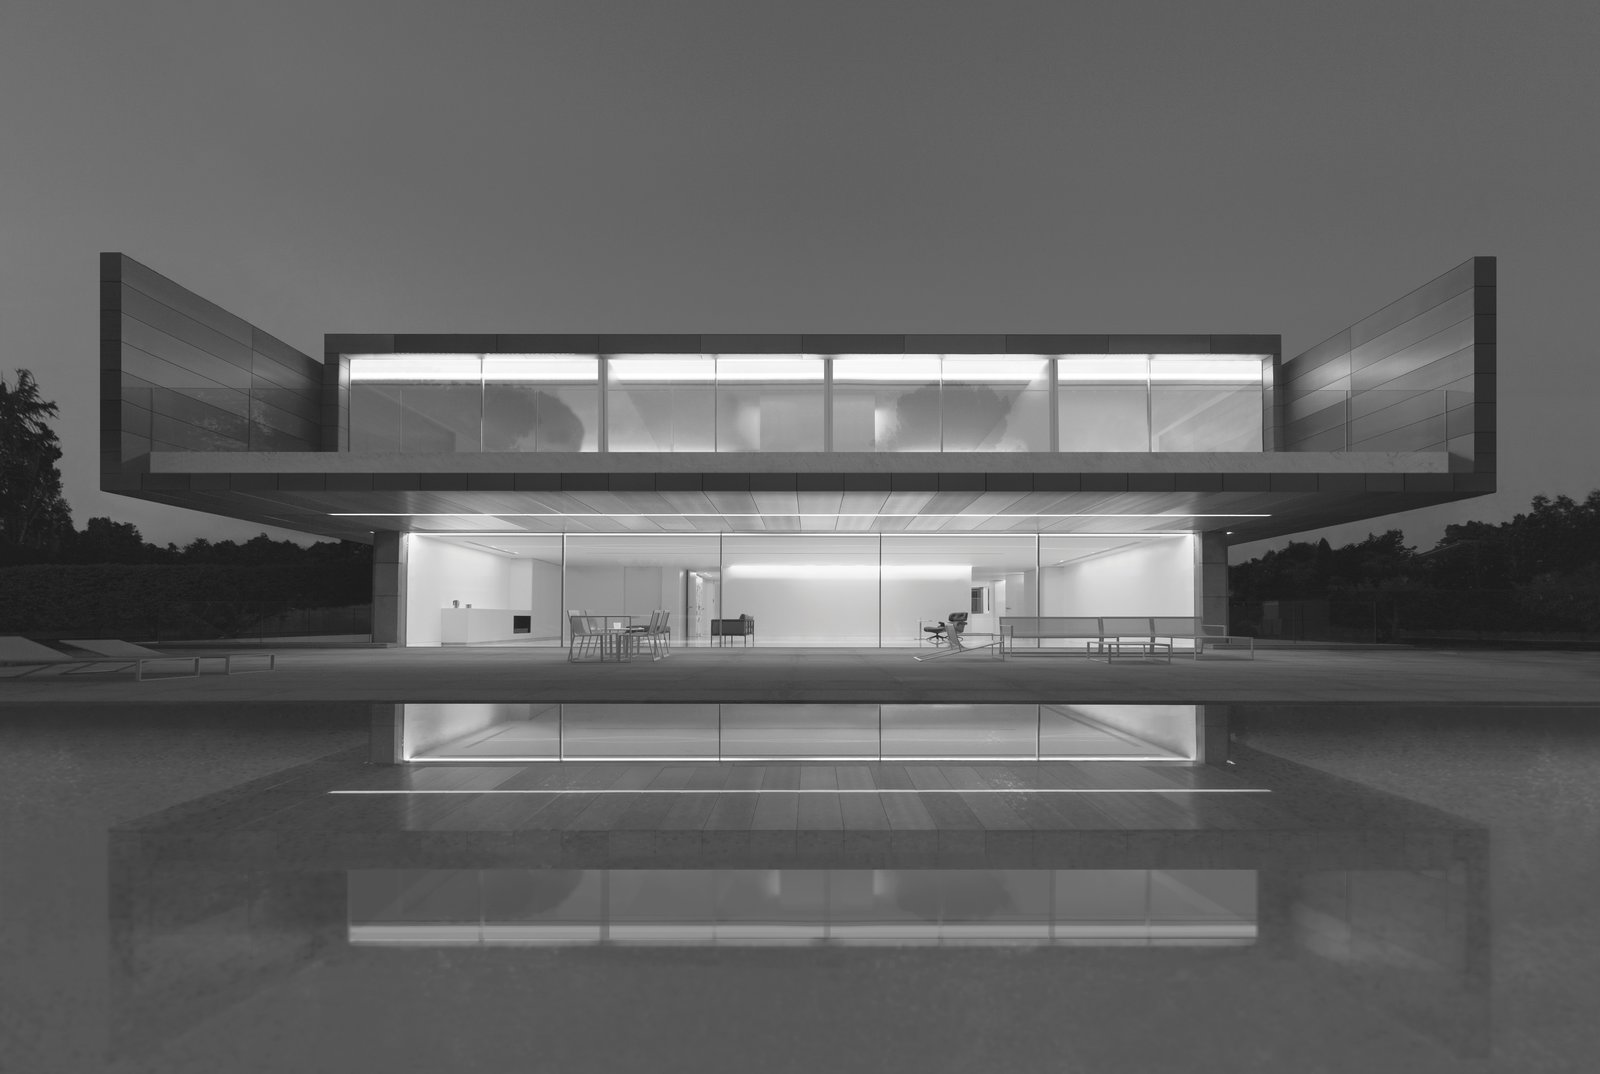 Fran Silvestre Arquitectos: Aluminum House in Madrid, Spain, 2016  Photo 10 of 11 in Dive Into a Visually Stunning Book That Celebrates Modernist Architecture and its Evolution